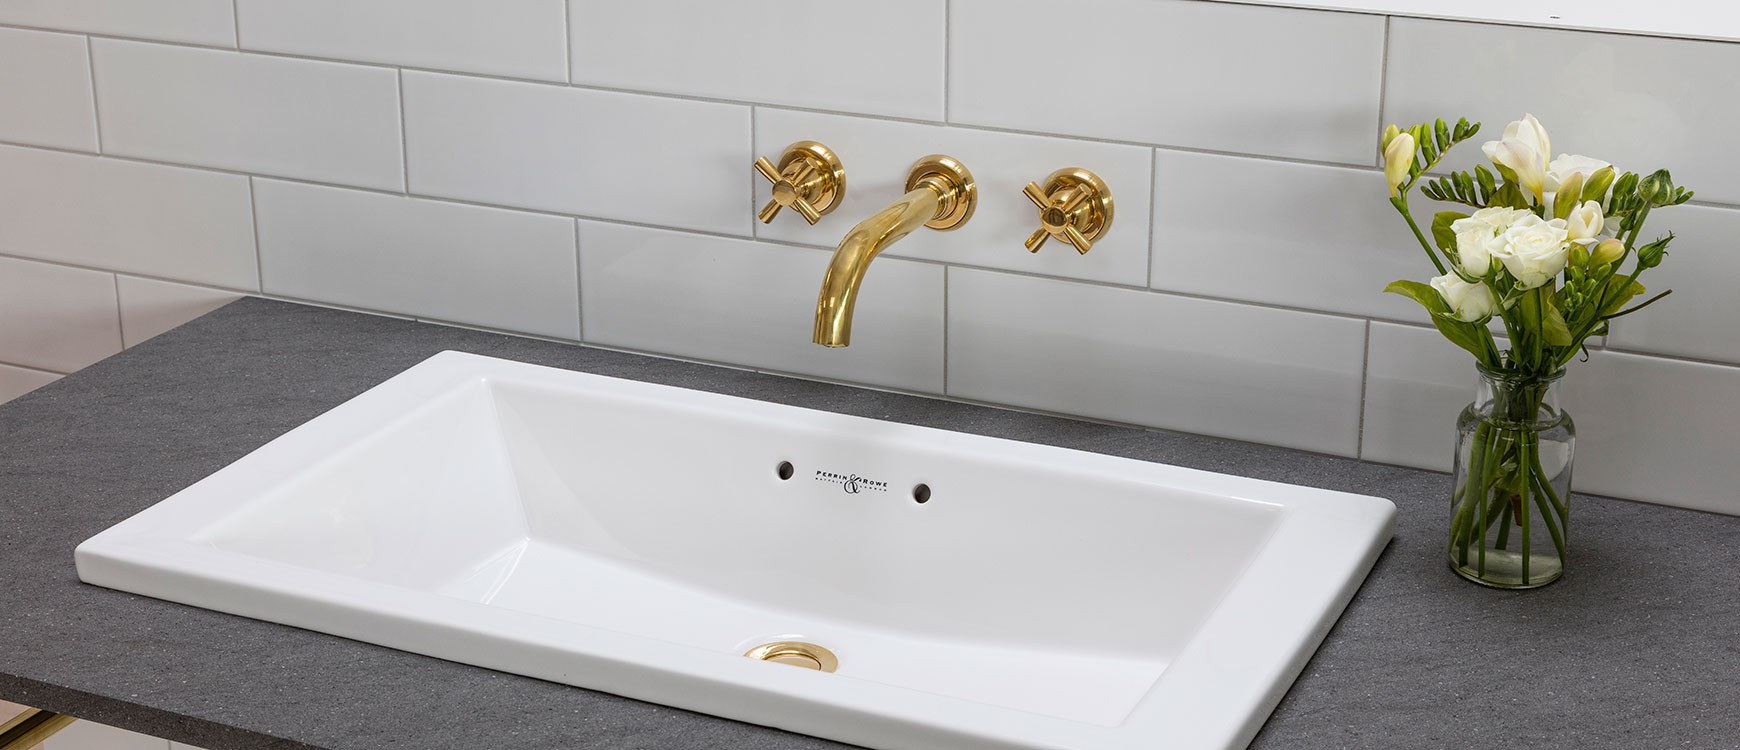 Traditional Taps Australia Best Quality Basin Taps Buy Bathroom Taps In Australia Online